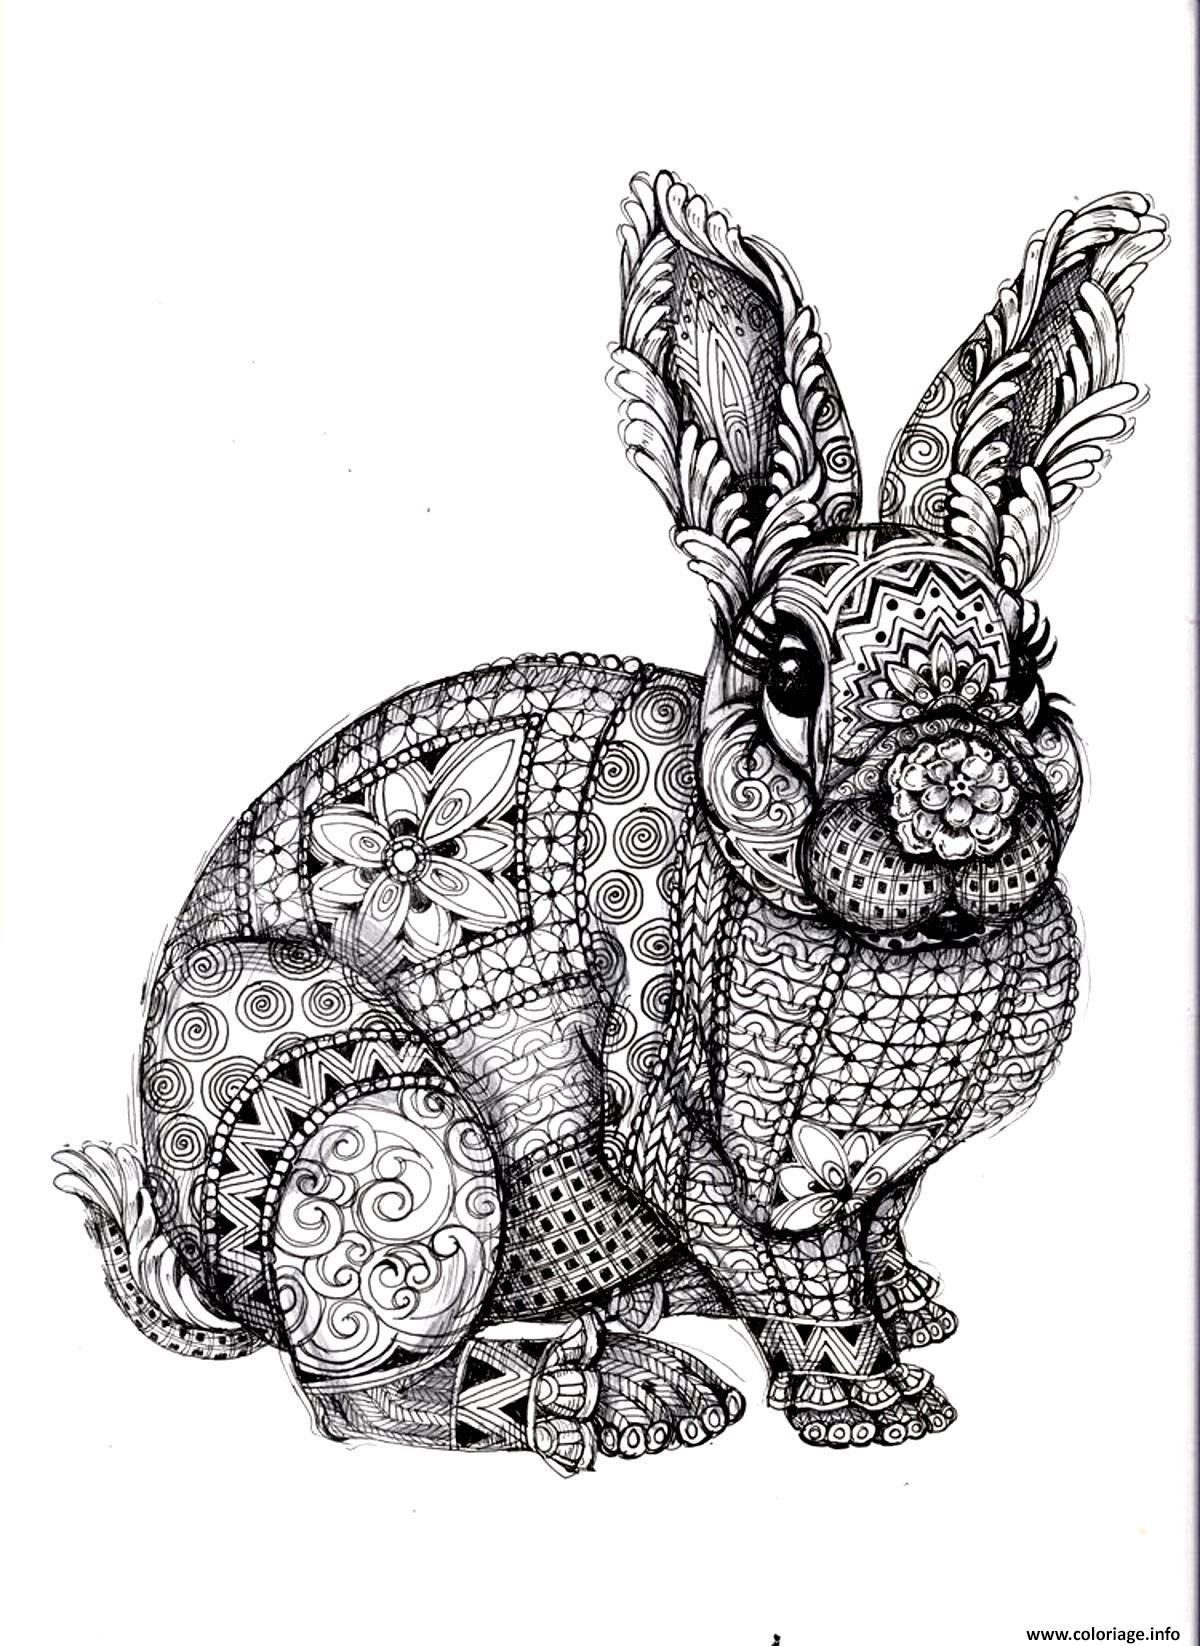 Coloriage adulte difficile lapin dessin - Coloriage adulte difficile ...